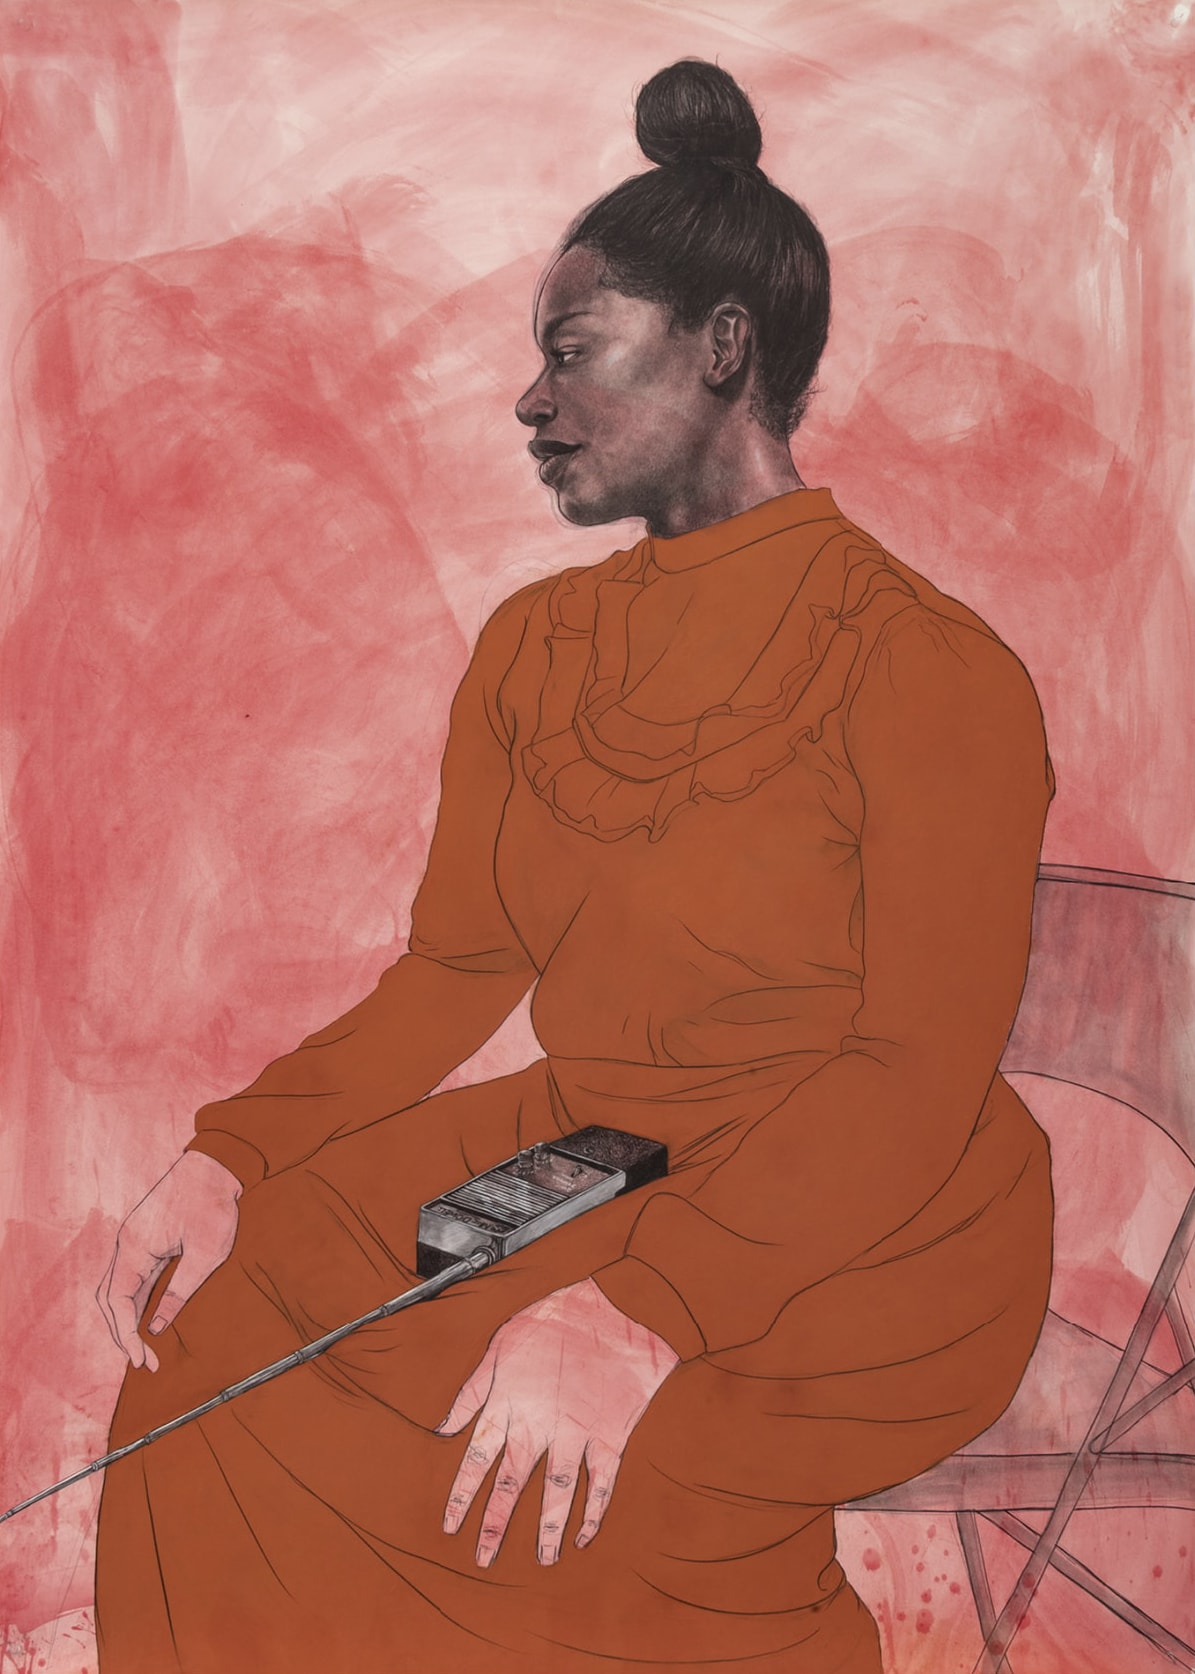 Meteorite, Robert Pruitt, conte and charcoal on dyed paper, rendered walkie-talkie with audio component. A vertical, rectangular portrait of a seated Black woman in profile wearing a long, burnt orange colored dress with a walkie-talkie in her lap, against a reddish background. The woman sits on the edge of a folding chair and is turned slightly to the left with her hands resting on her knees. Her head is turned to the left and her hair is swept up into a bun on top. Her expression is neutral. Her face and hair are rendered in careful detail in tones of gray and black with the reddish background showing through in areas. Soft white highlights touch her cheekbone, temple and lips. She wears a long sleeve, high necked dress with a U-shaped ruffle on the upper bodice. The dress is characterized by simple lines with less detail than the head of the woman. Her hands reflect the wash of reddish pigment that also unevenly fills the background of the portrait. In her lap sits a walkie-talkie, a black and silver rectangular device with a long antenna that extends out from the woman's lap beyond the edge of the work. The folding chair seen partially right is sheer gray with the reddish background again showing through.